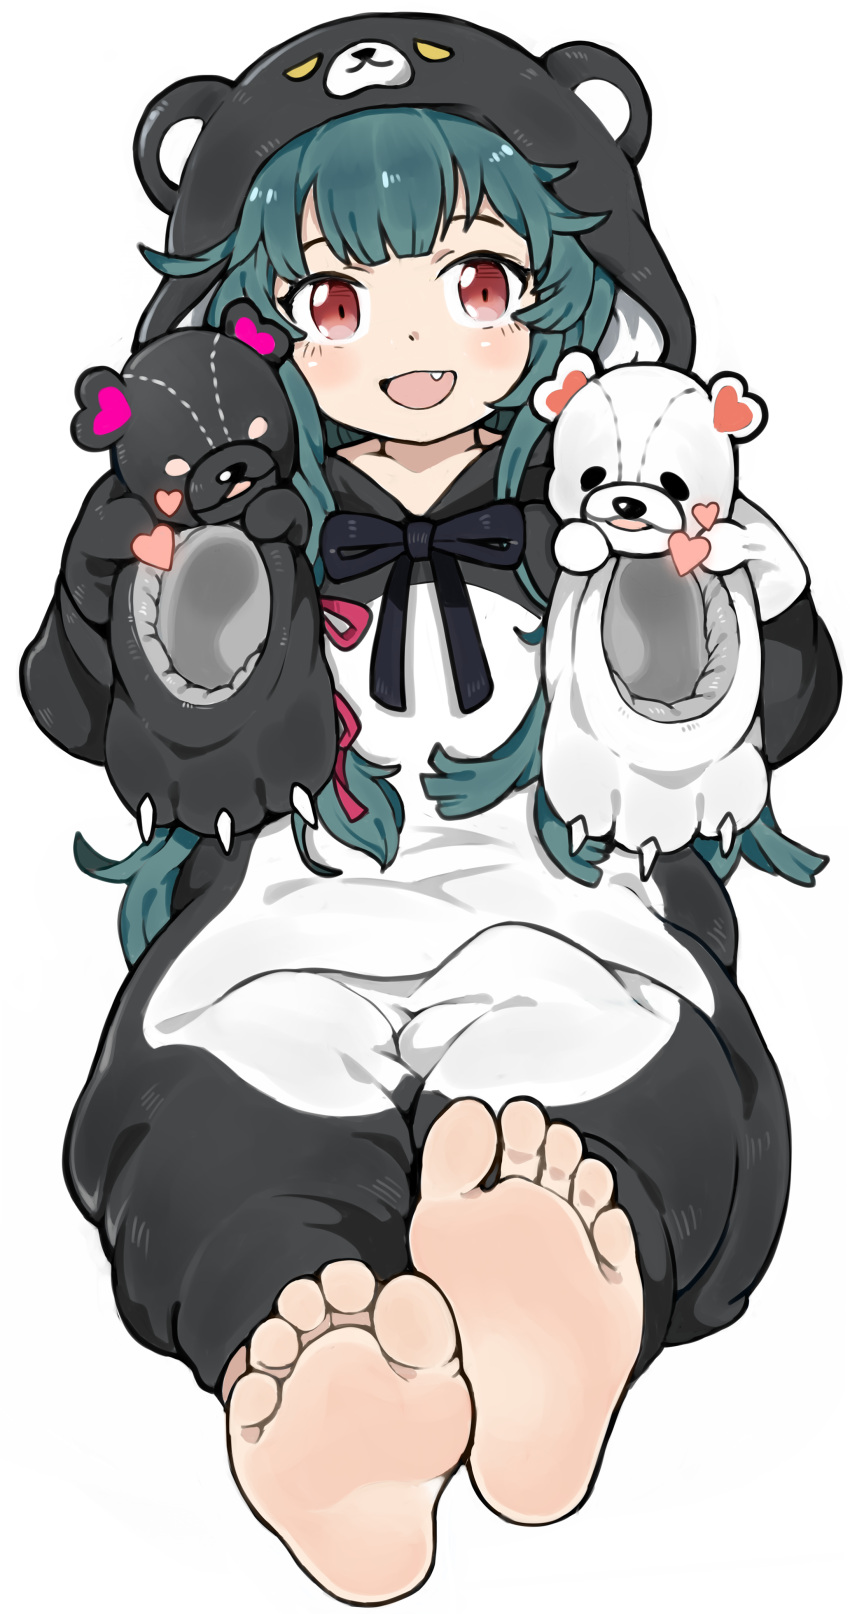 1girl absurdres animal_costume animal_ears animal_hood animal_slippers bangs barefoot bear_costume bear_ears bear_hood bear_paws blush bow eyebrows eyelashes fang feet footprints footwear_removed foreshortening gloves greek_toe green_hair heart highres holding holding_clothes holding_footwear holding_shoes hood hood_up hoodie kuma_kuma_kuma_bear long_hair long_sleeves looking_at_viewer menla open_mouth paw_gloves paw_shoes paws pov pov_feet red_eyes ribbon shoes shoes_removed simple_background sitting slippers slippers_removed smile soles solo teasing teeth toes tongue very_long_hair white_background yuna_(kuma_kuma_kuma_bear)